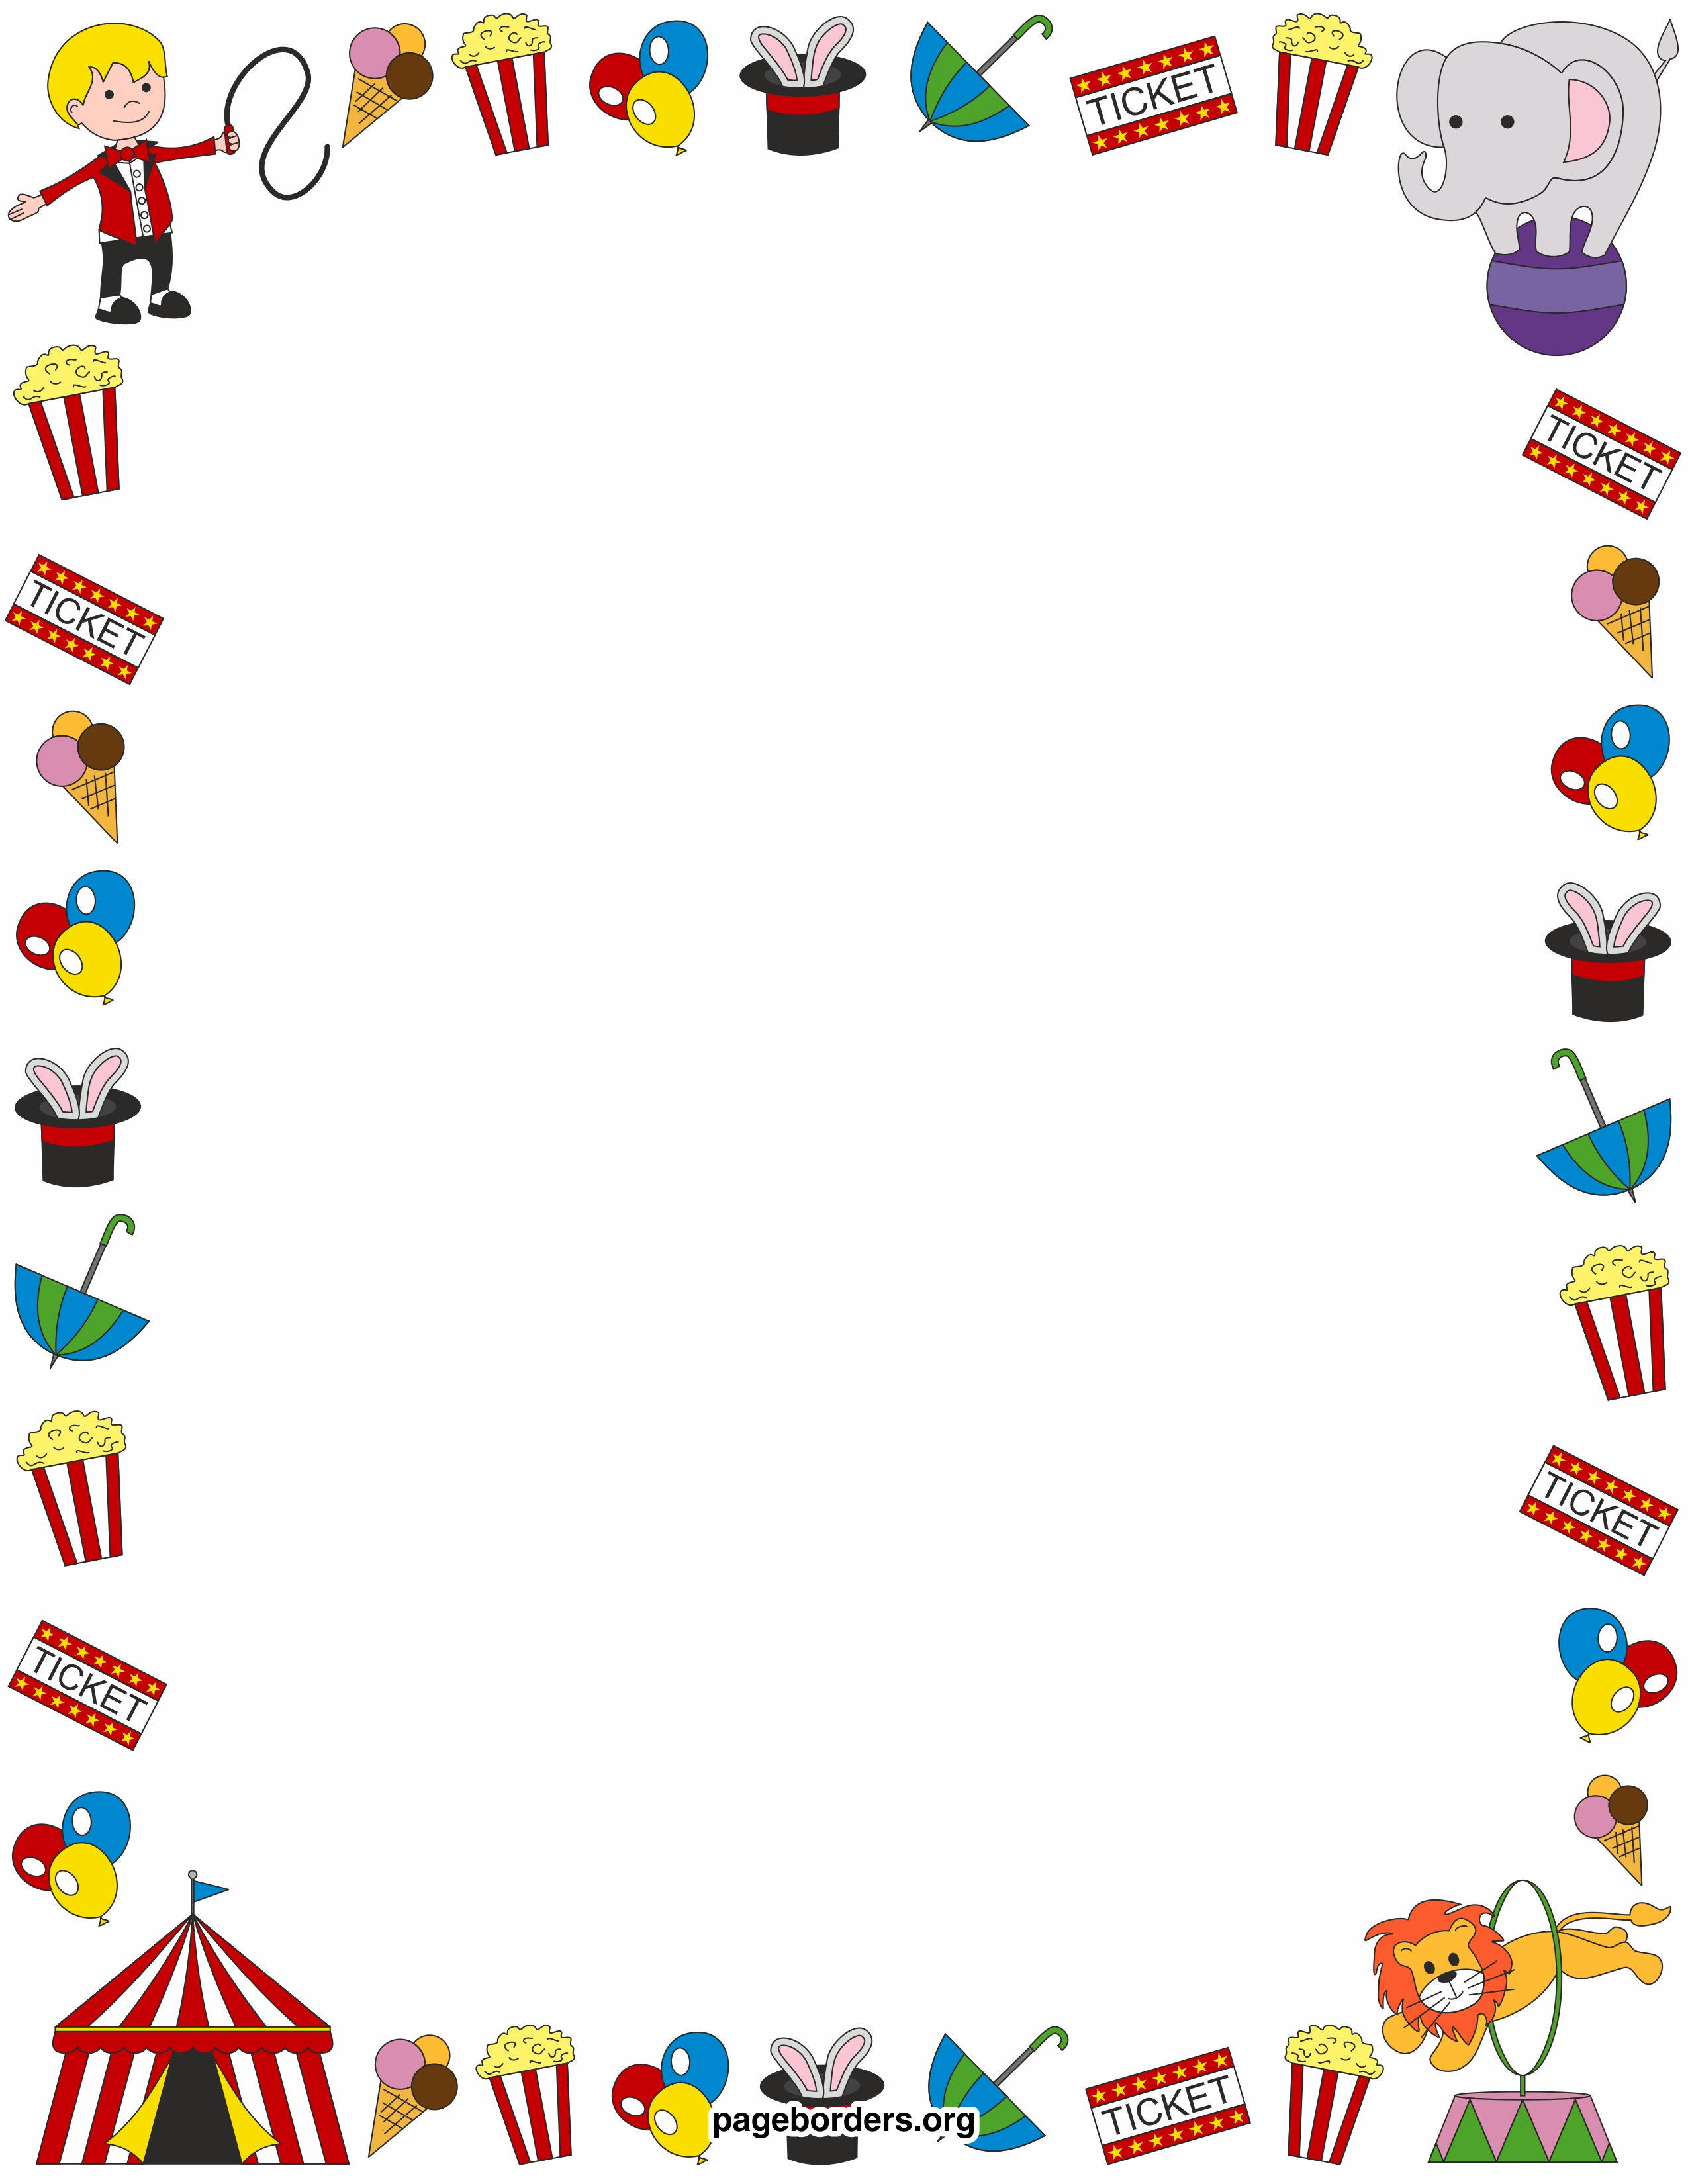 Circus border clipart vector transparent library Free Circus Word Cliparts, Download Free Clip Art, Free Clip Art on ... vector transparent library